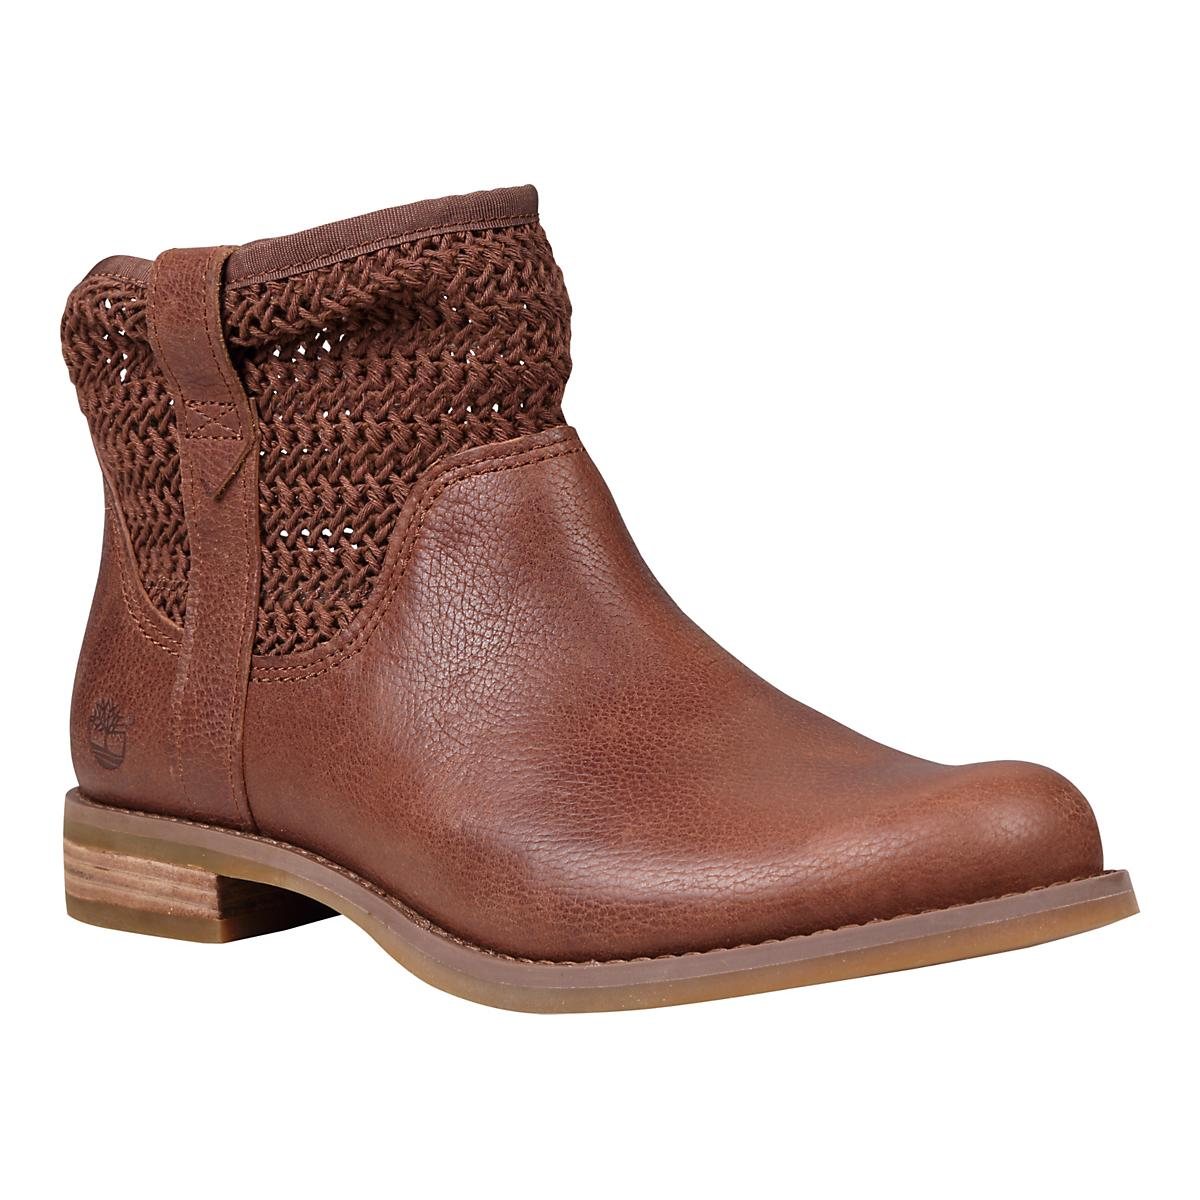 Women's Timberland�Savin Hill Leather and Fabric Ankle Boot